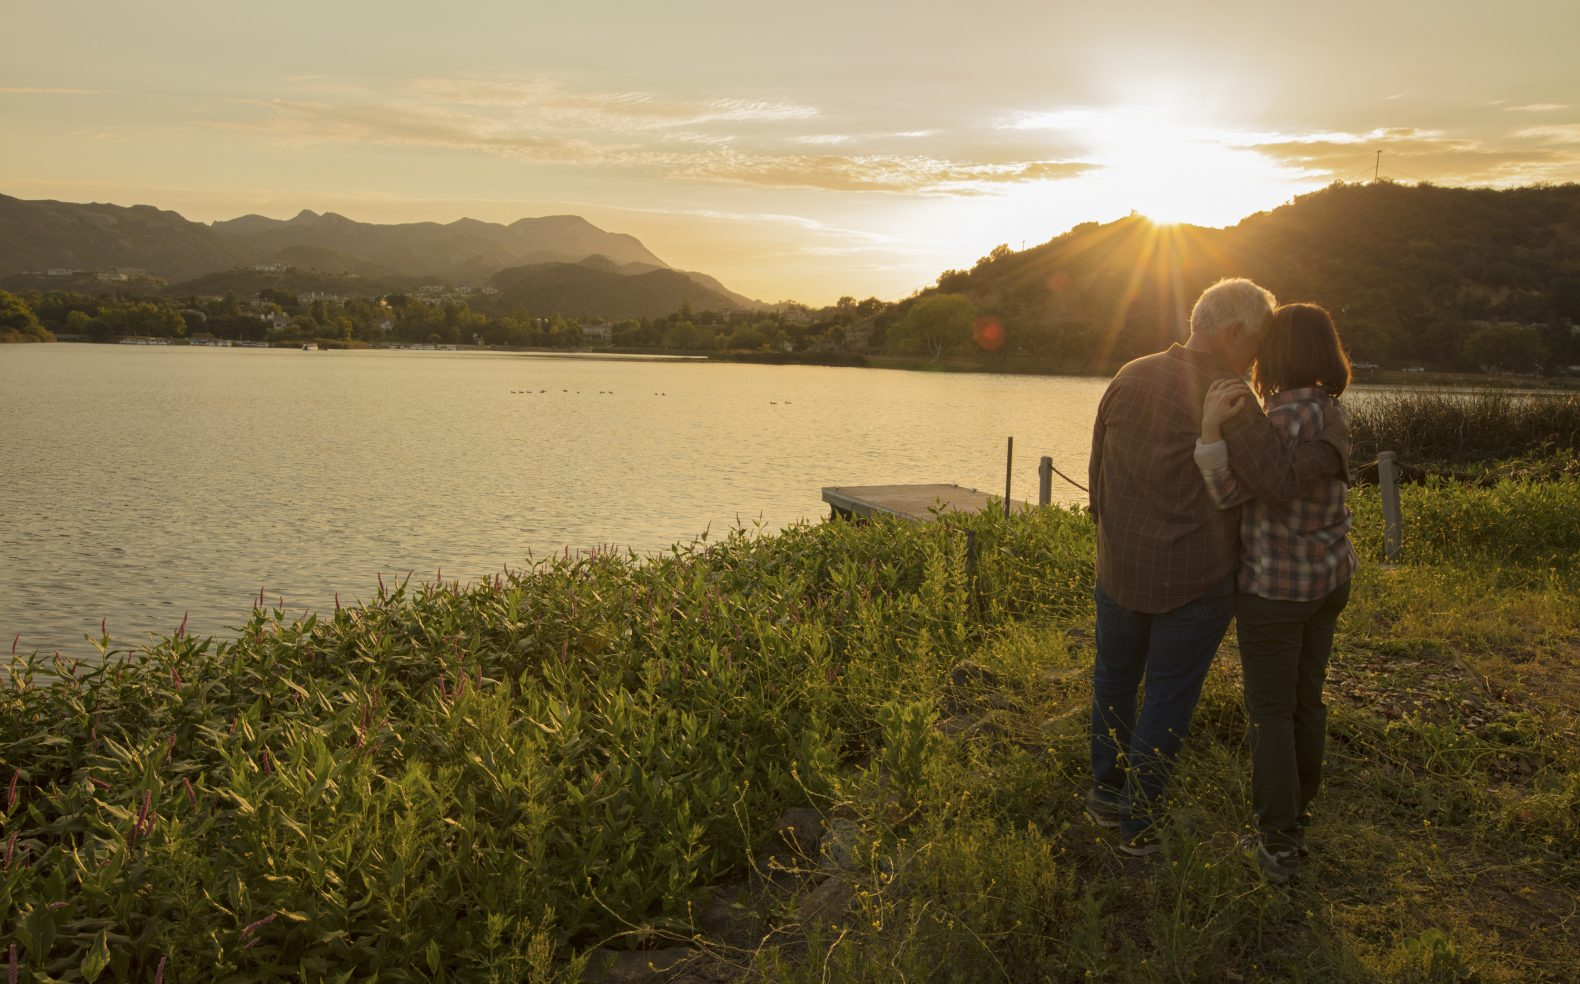 A middle-aged couple standing and embracing in grass next to a dock on a lake while the sun sets over the lake and mountains.